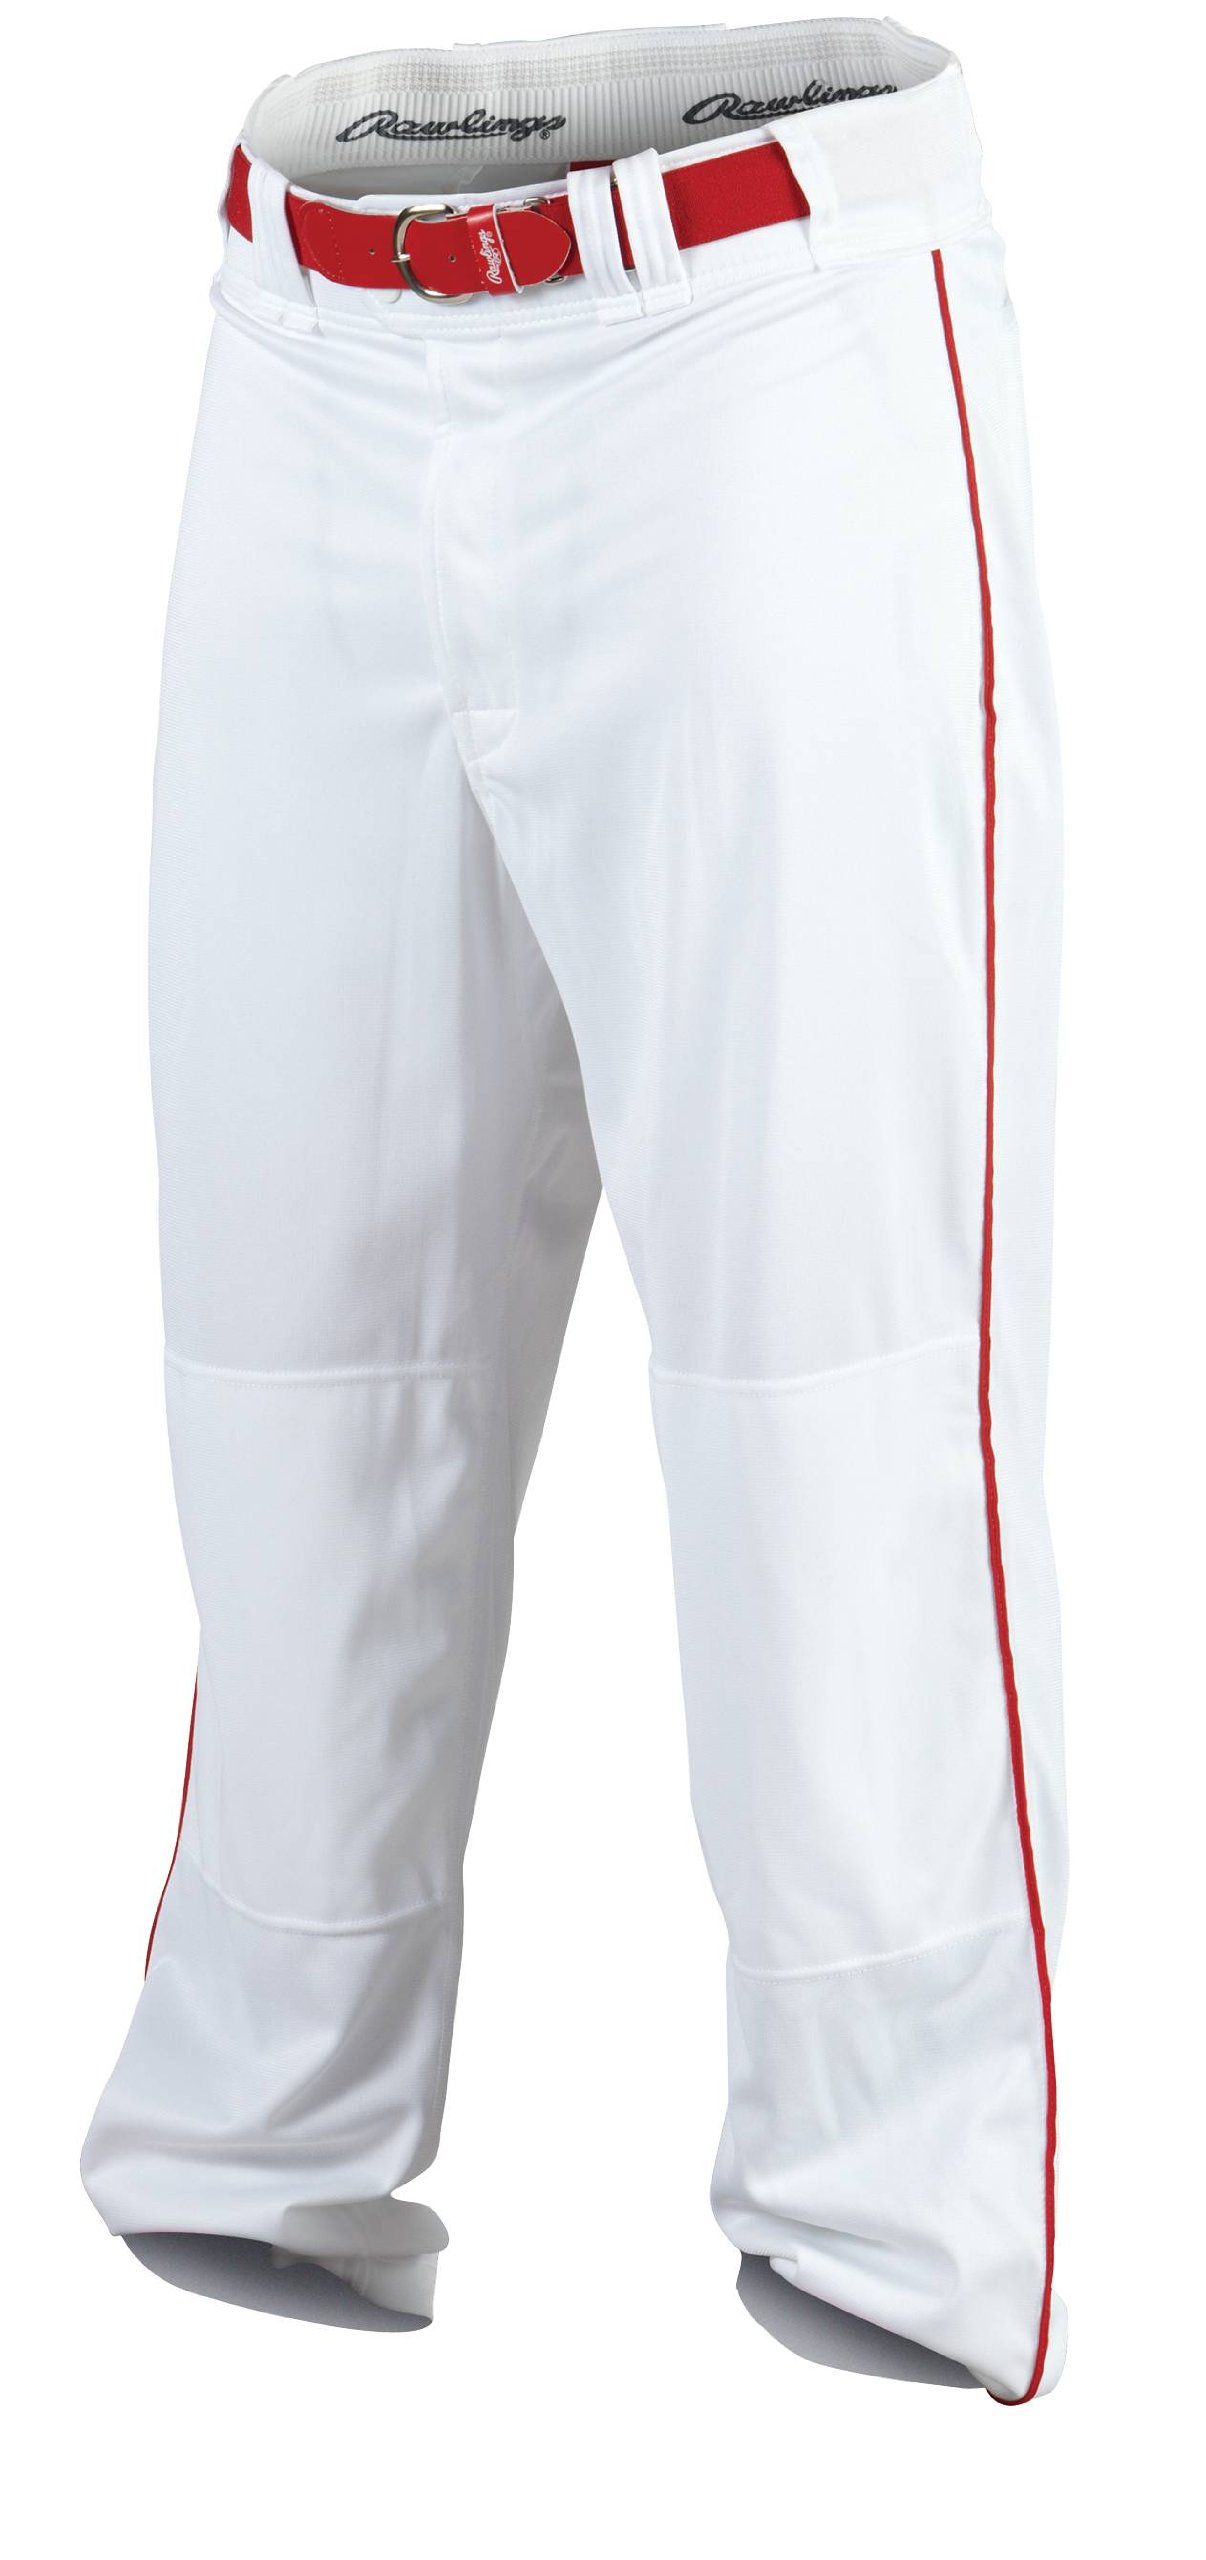 Rawlings Men's Baseball Pant (White/Scarlet, X-Large) by Rawlings